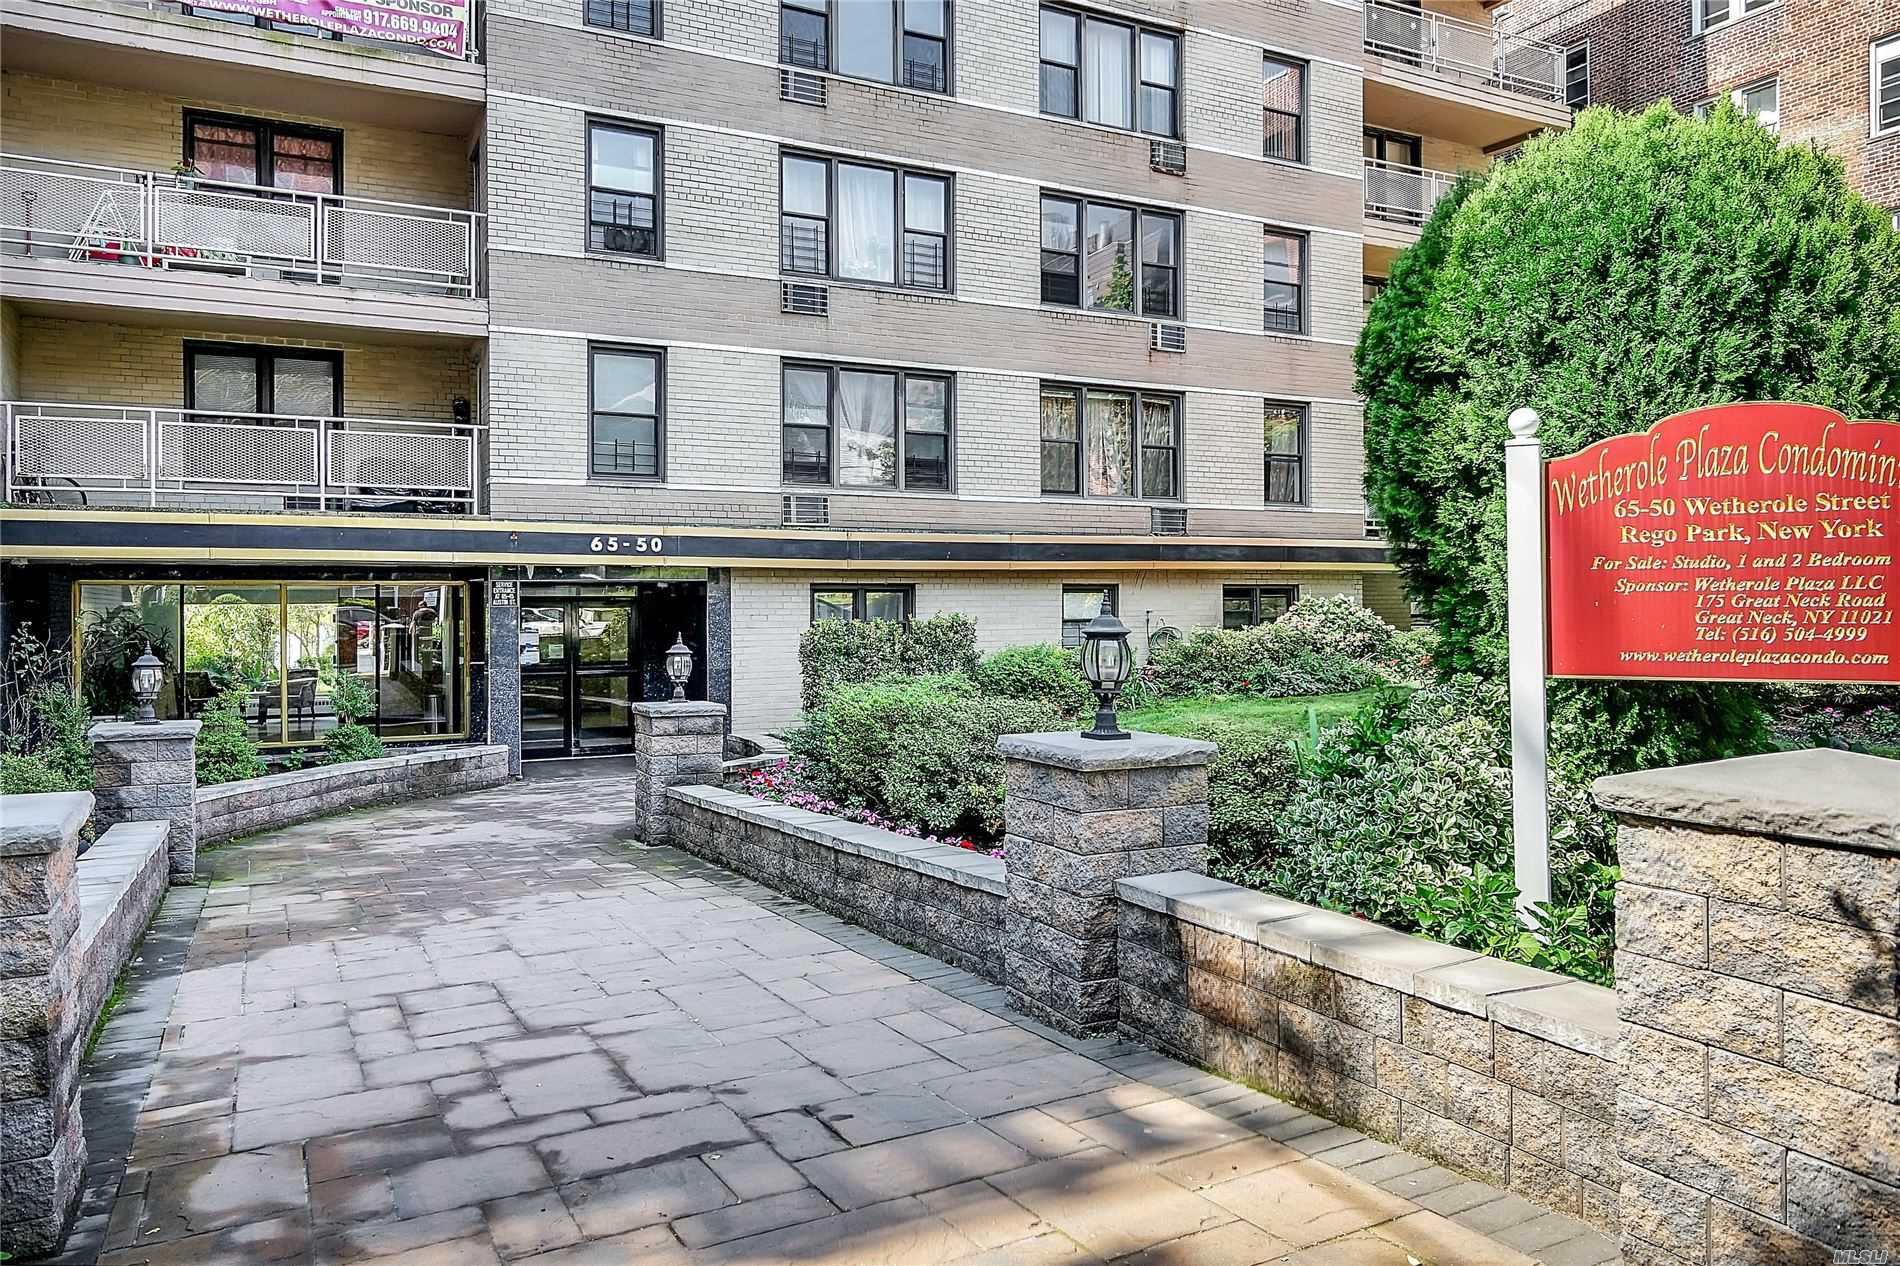 Property for sale at 65-50 Wetherole Street Unit: 1E, Rego Park,  New York 11374